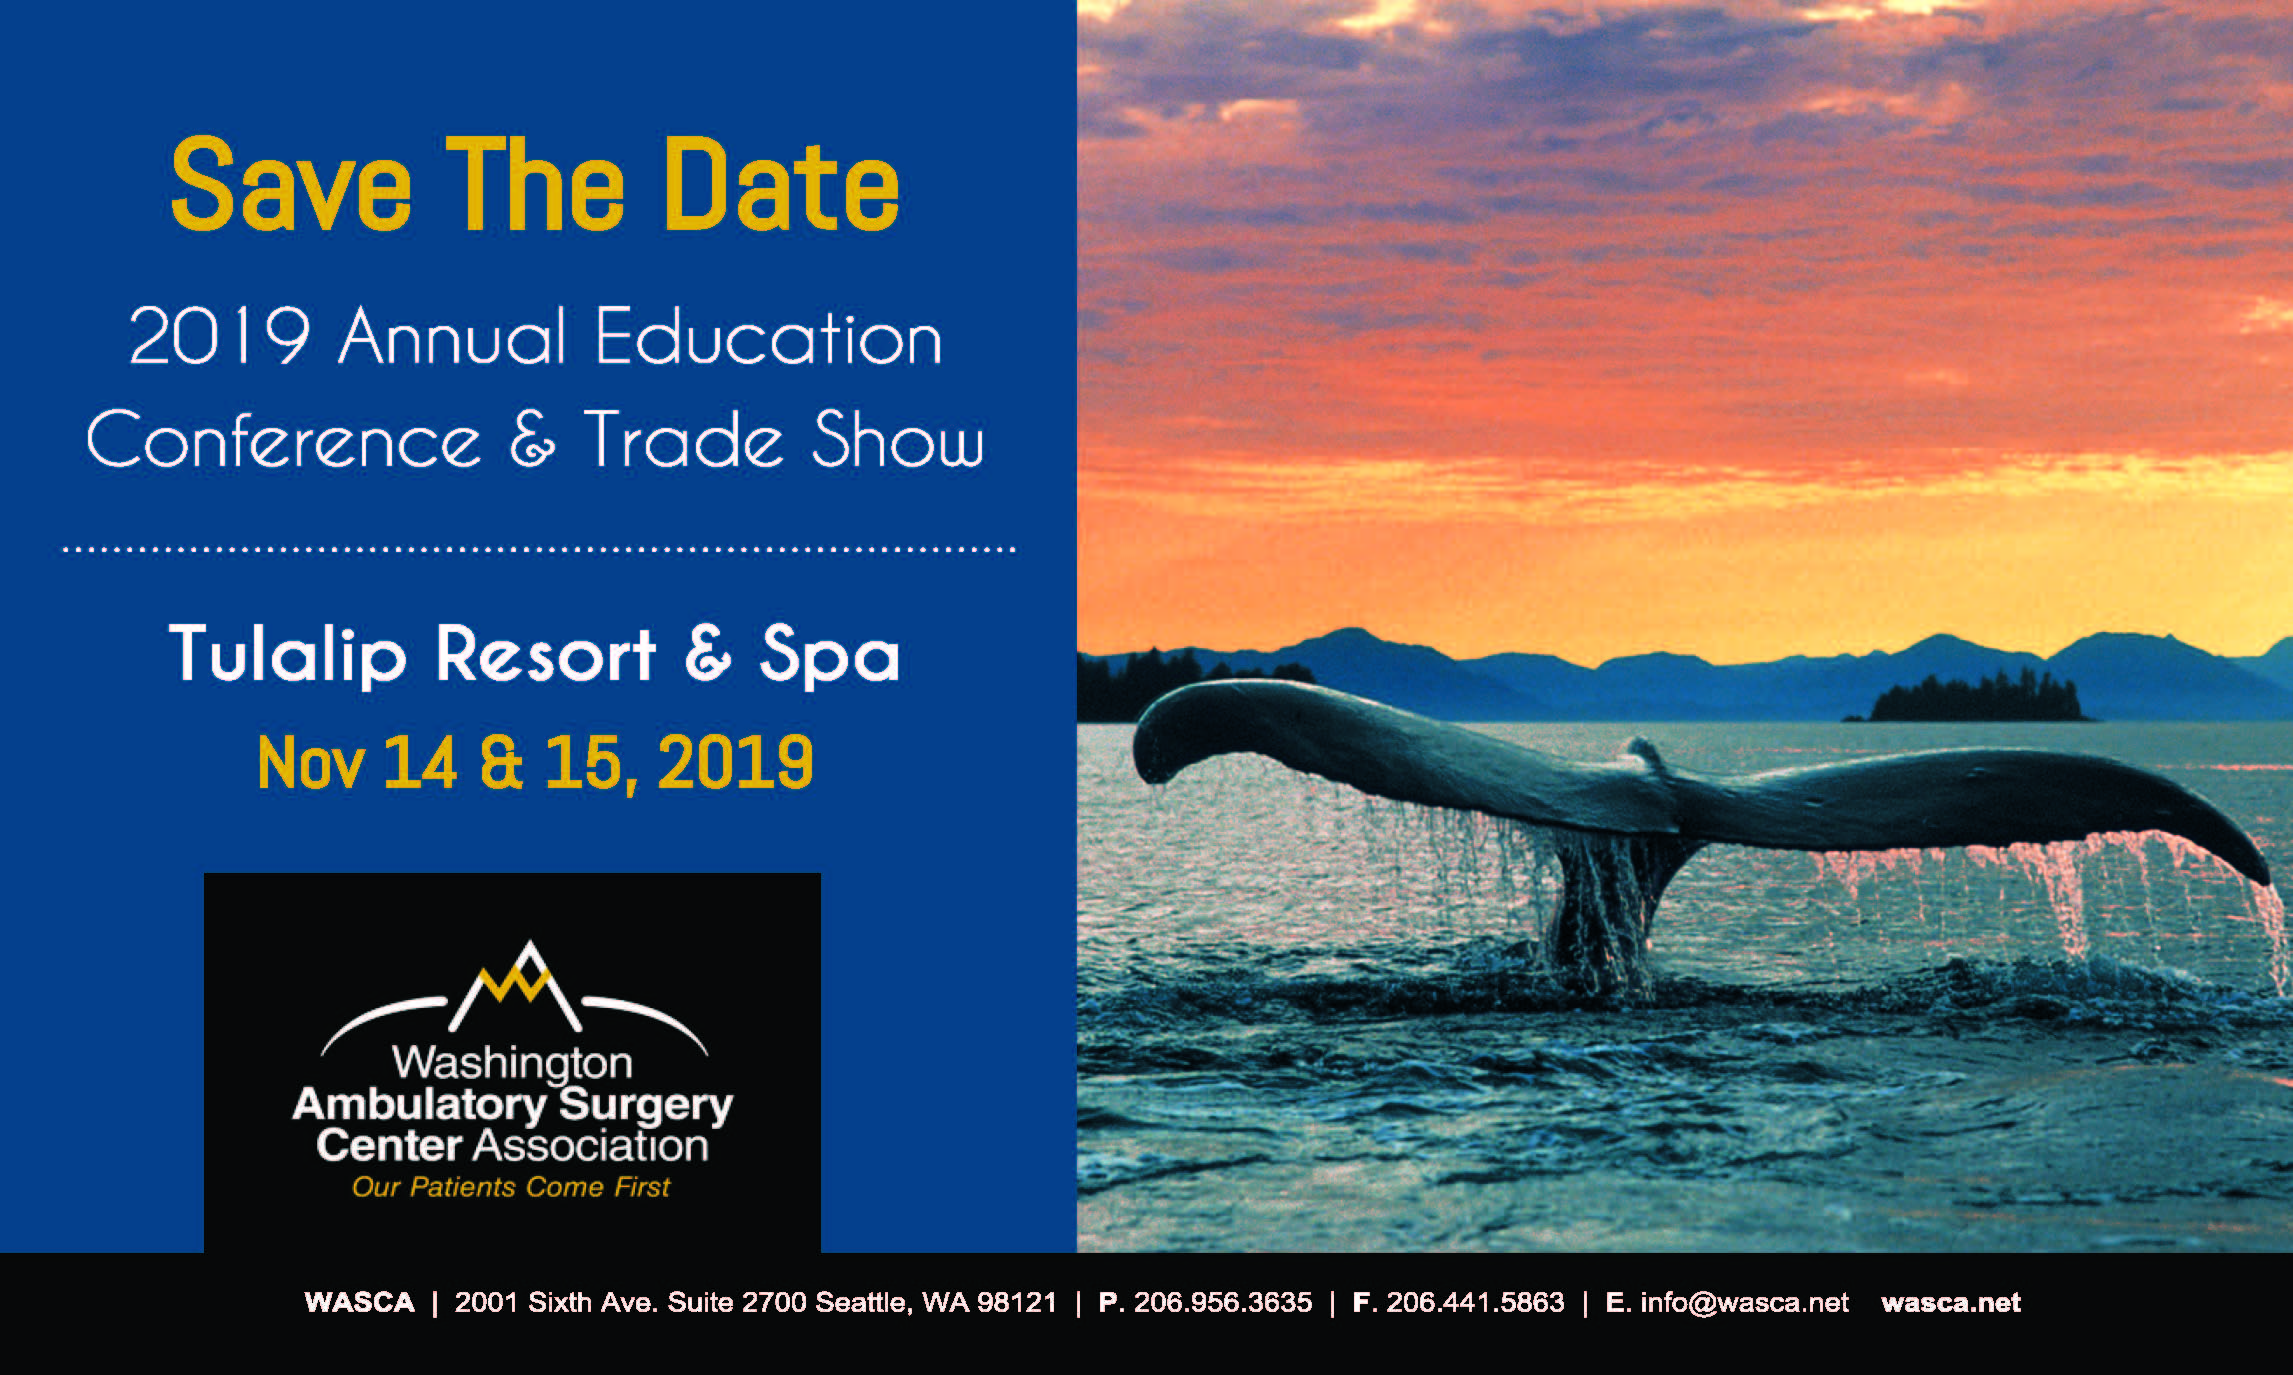 2018 Annual Education Conference & Trade Show - WASCA